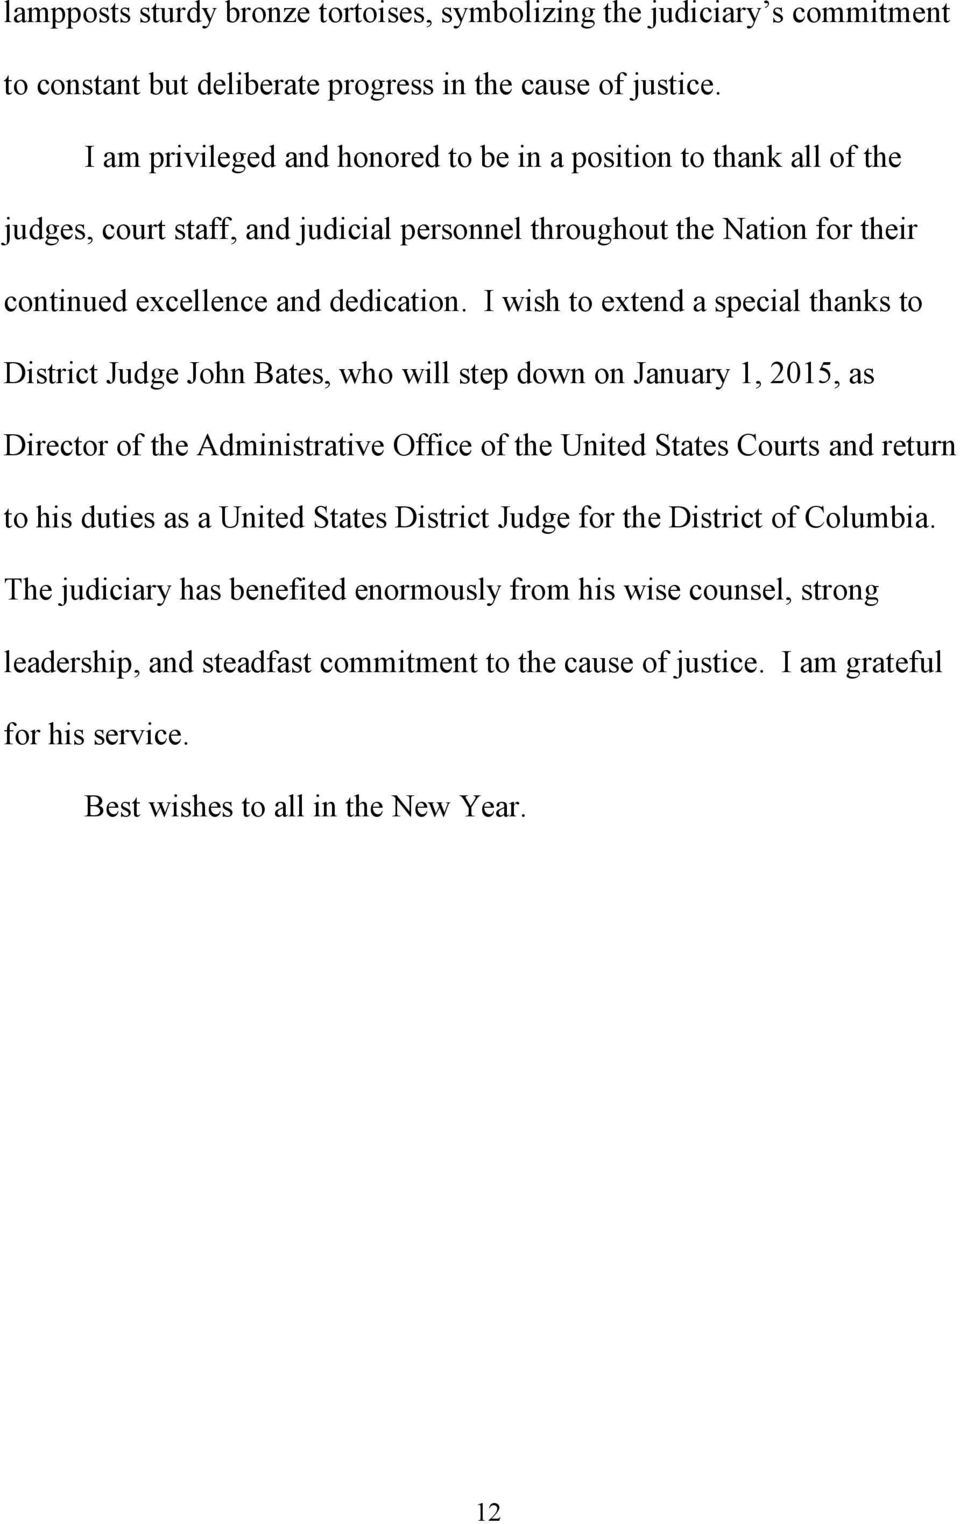 I wish to extend a special thanks to District Judge John Bates, who will step down on January 1, 2015, as Director of the Administrative Office of the United States Courts and return to his